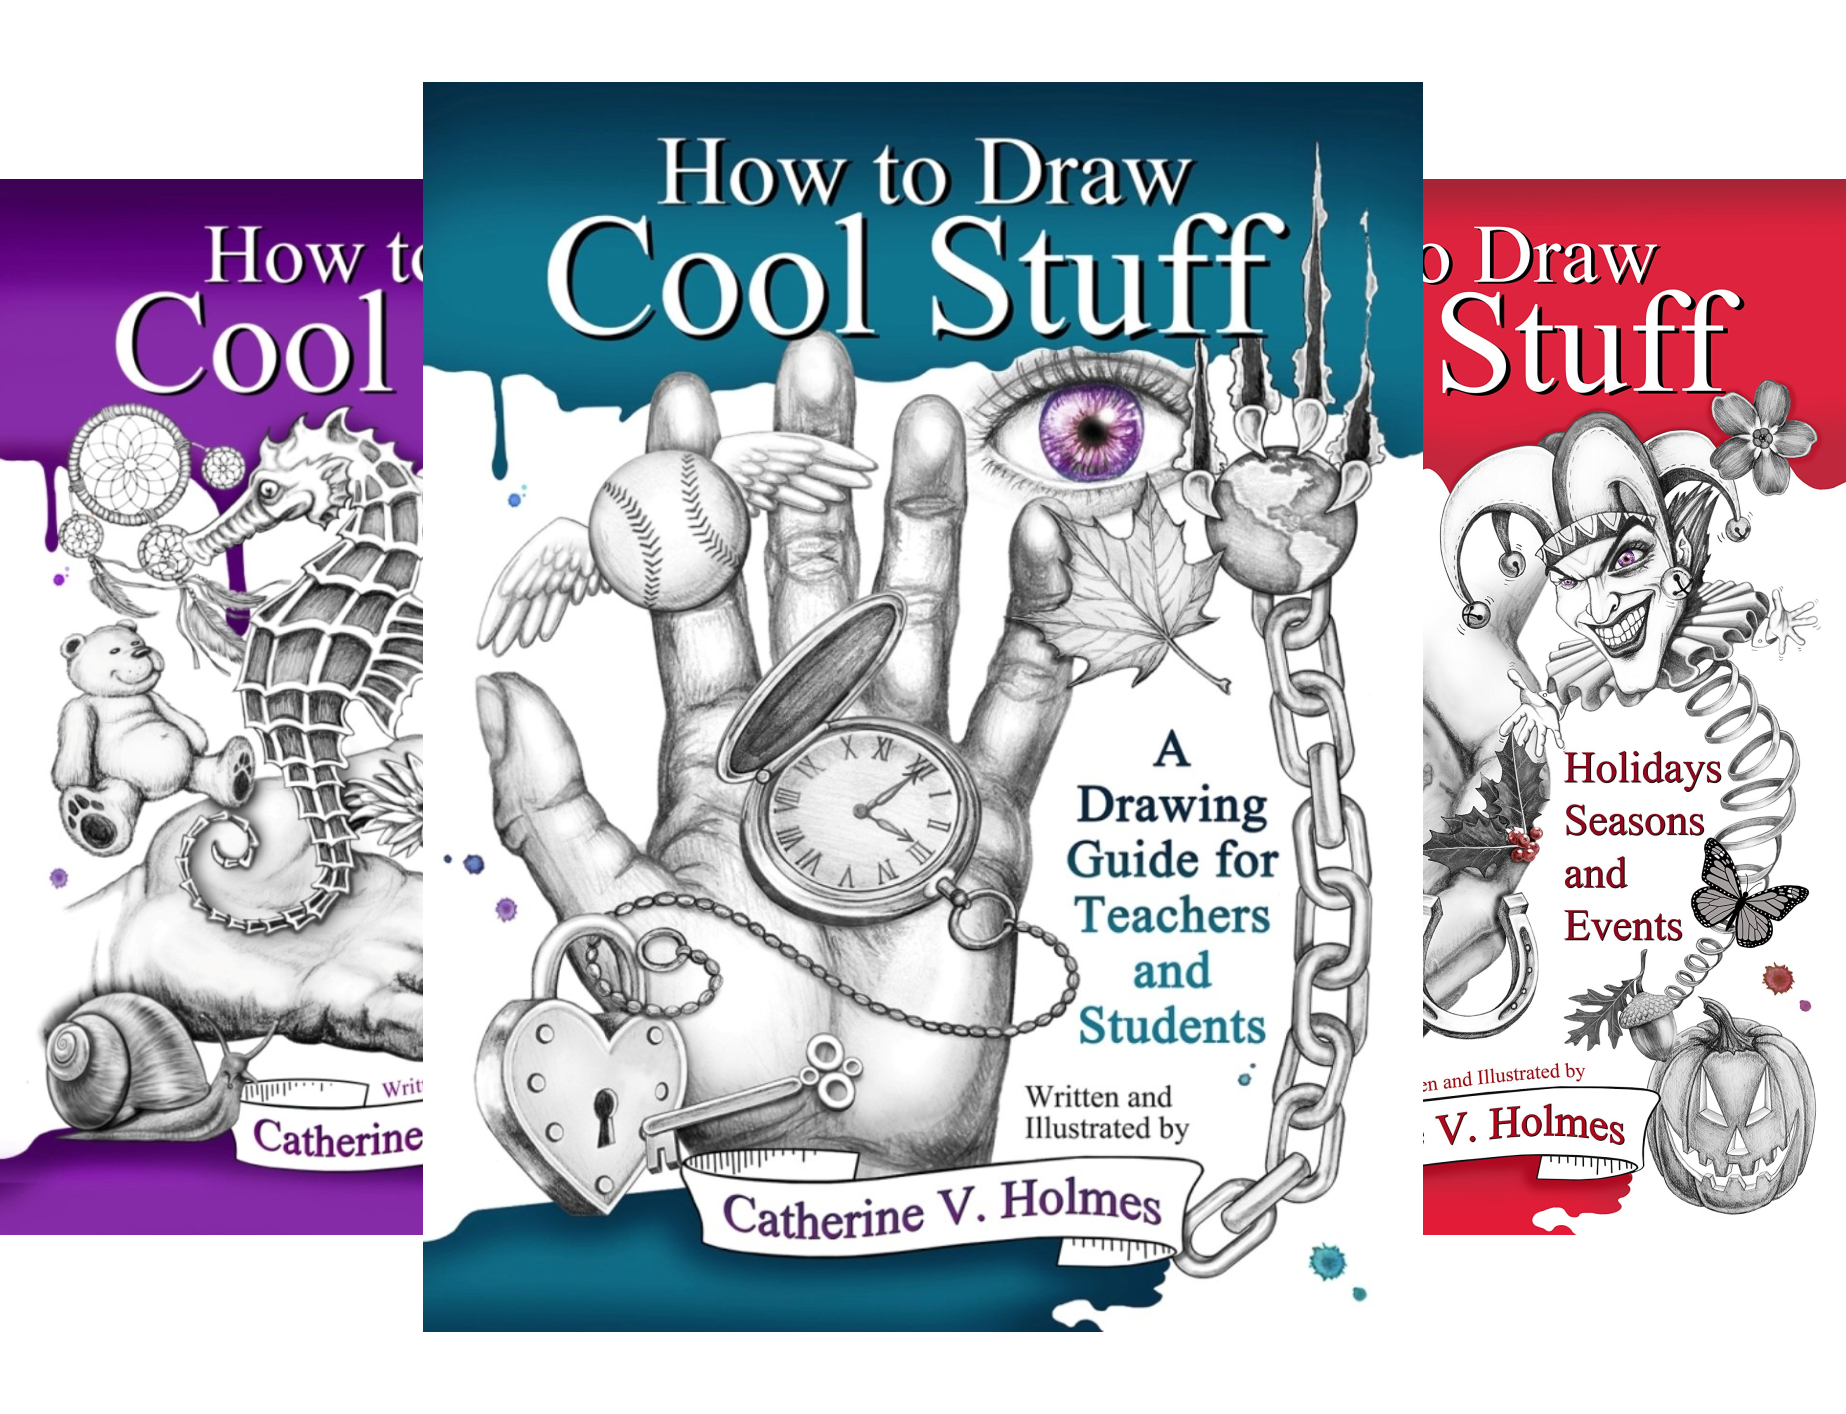 How to Draw Cool Stuff (3 Book Series)